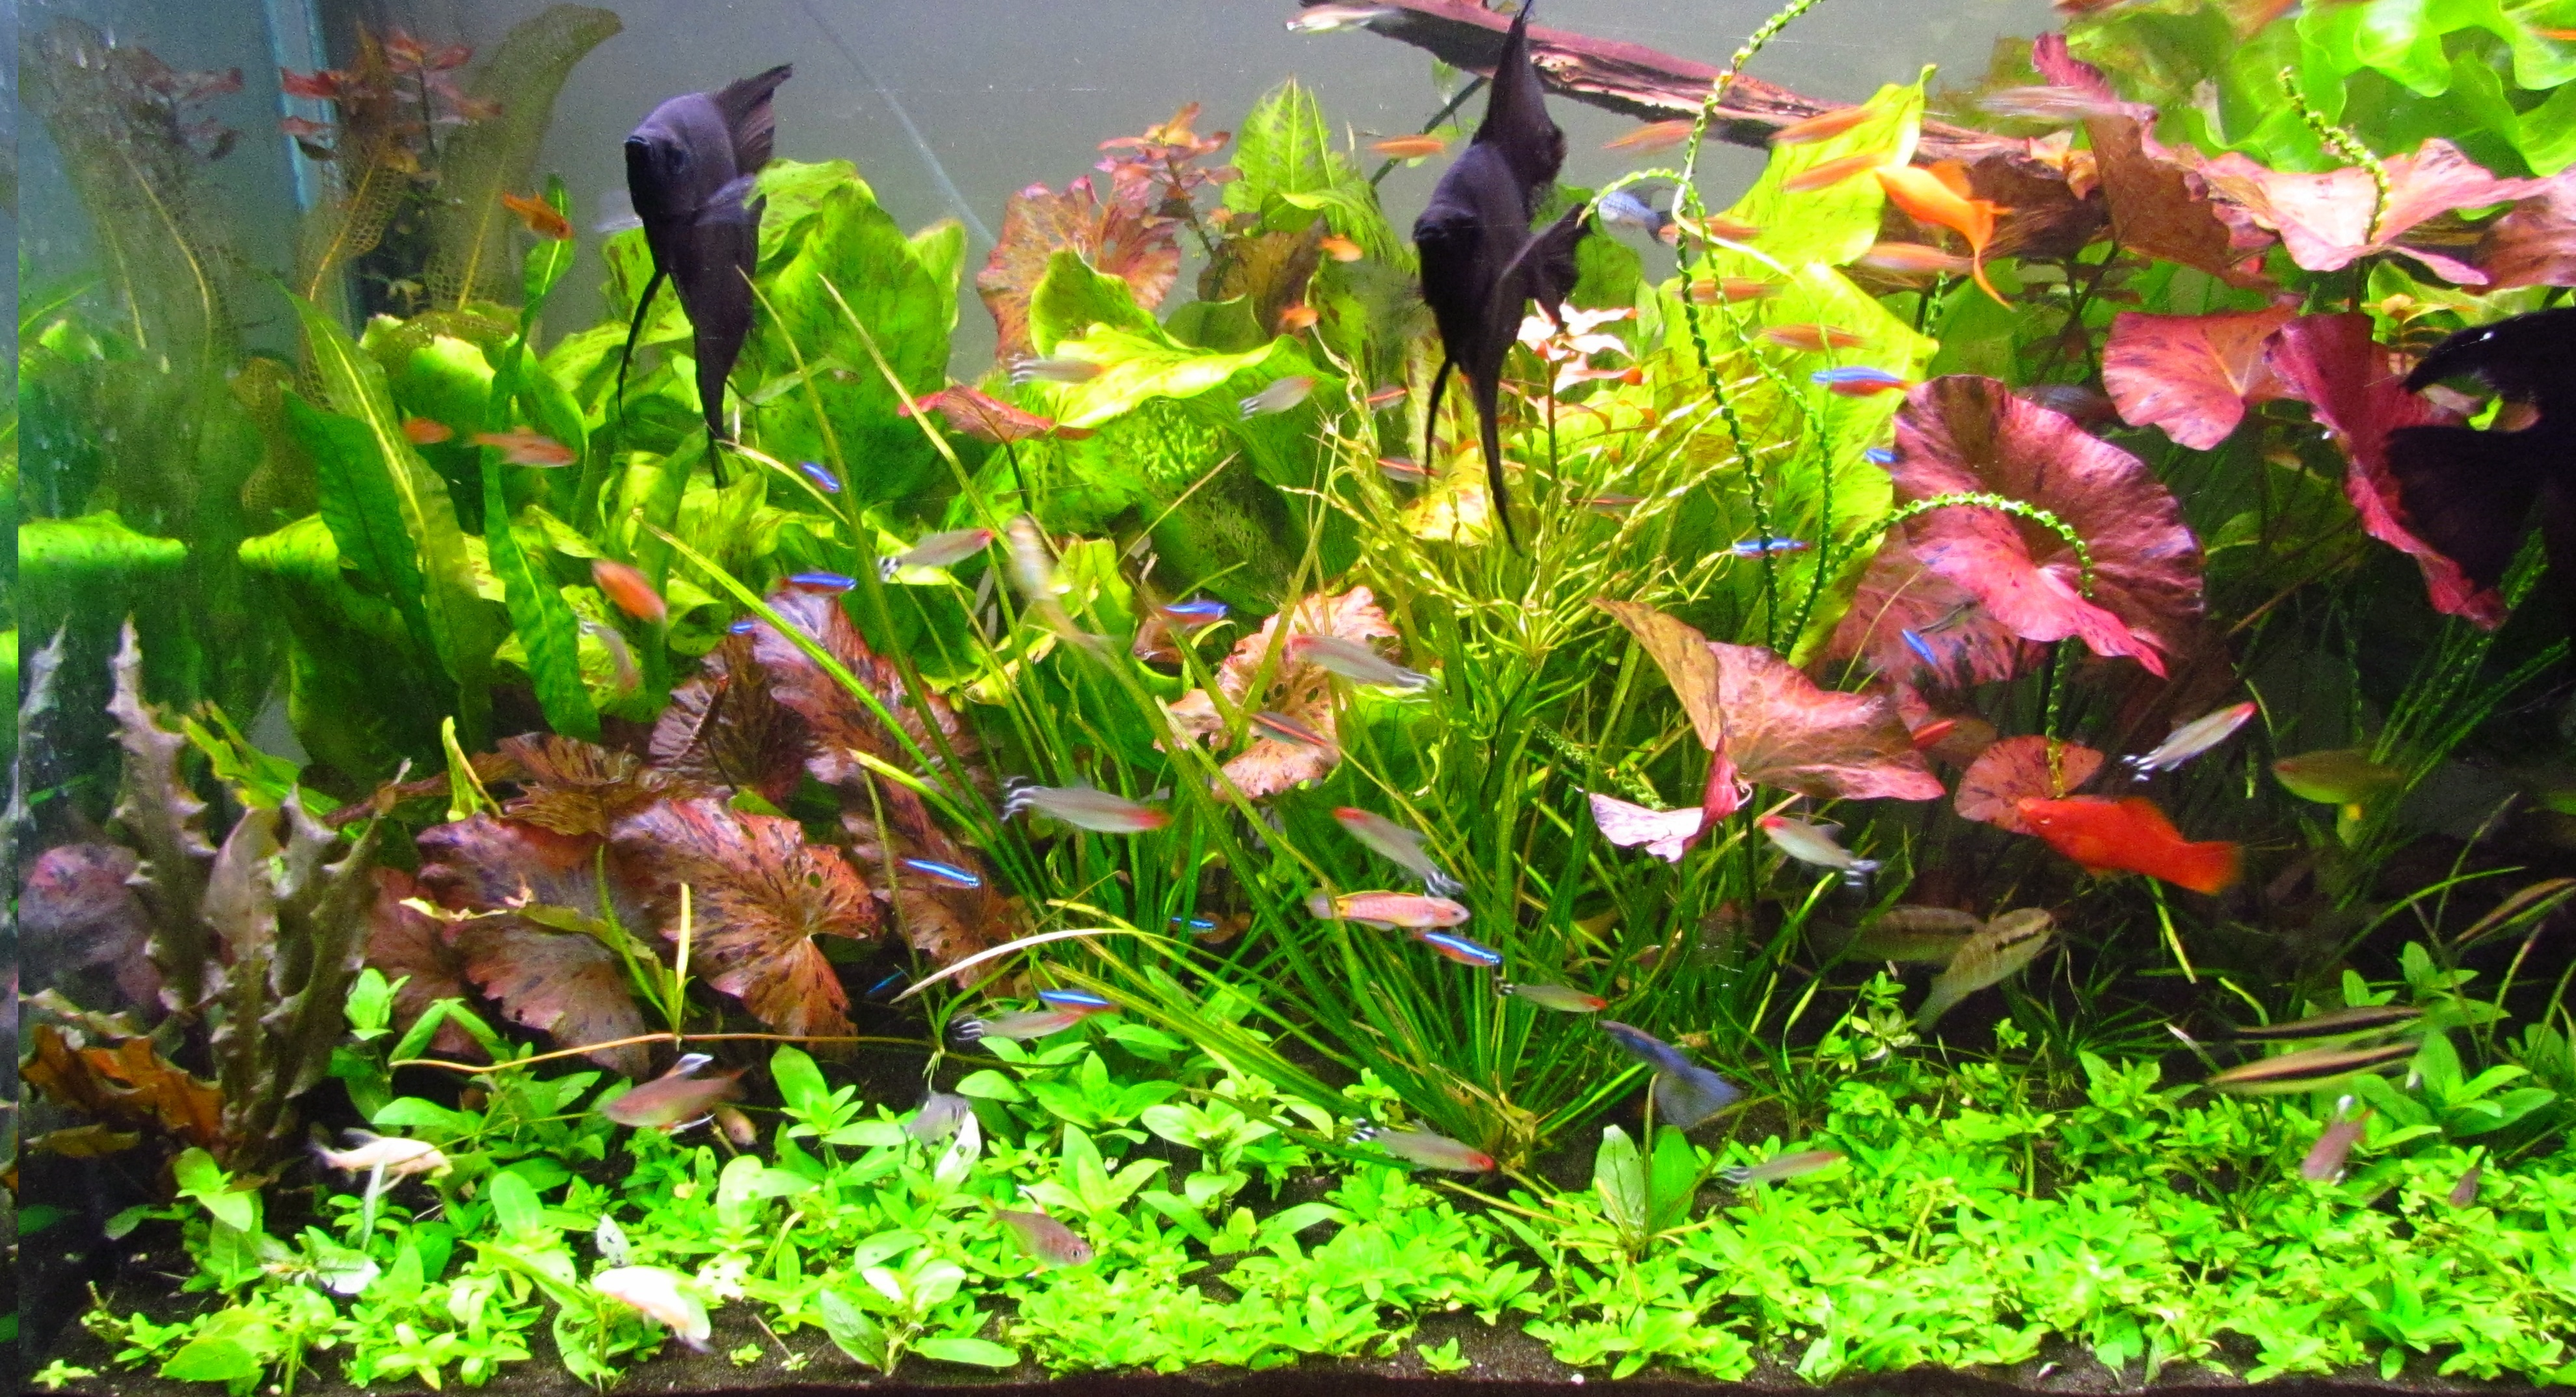 Live freshwater aquarium plants for sale cheap low prices, moss, hornwort, baby tears, java fern